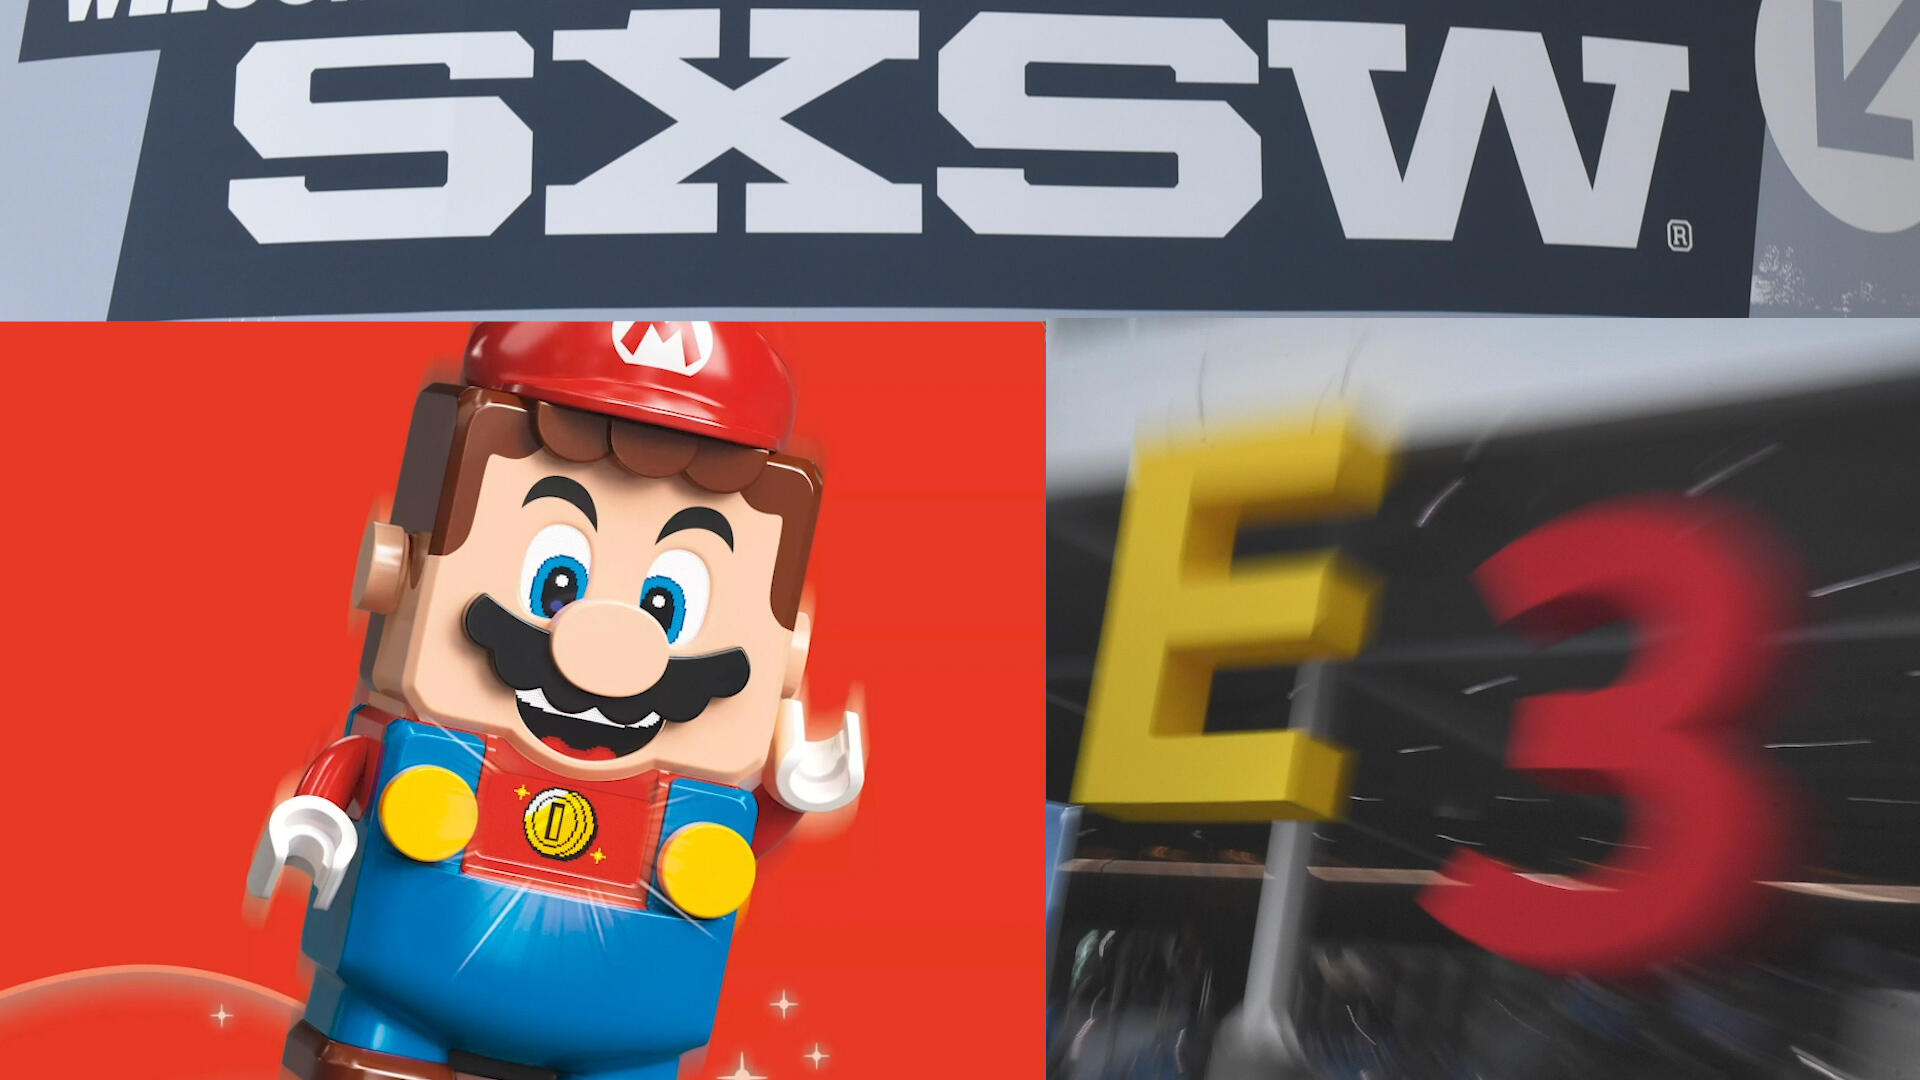 Video: SXSW, E3 canceled